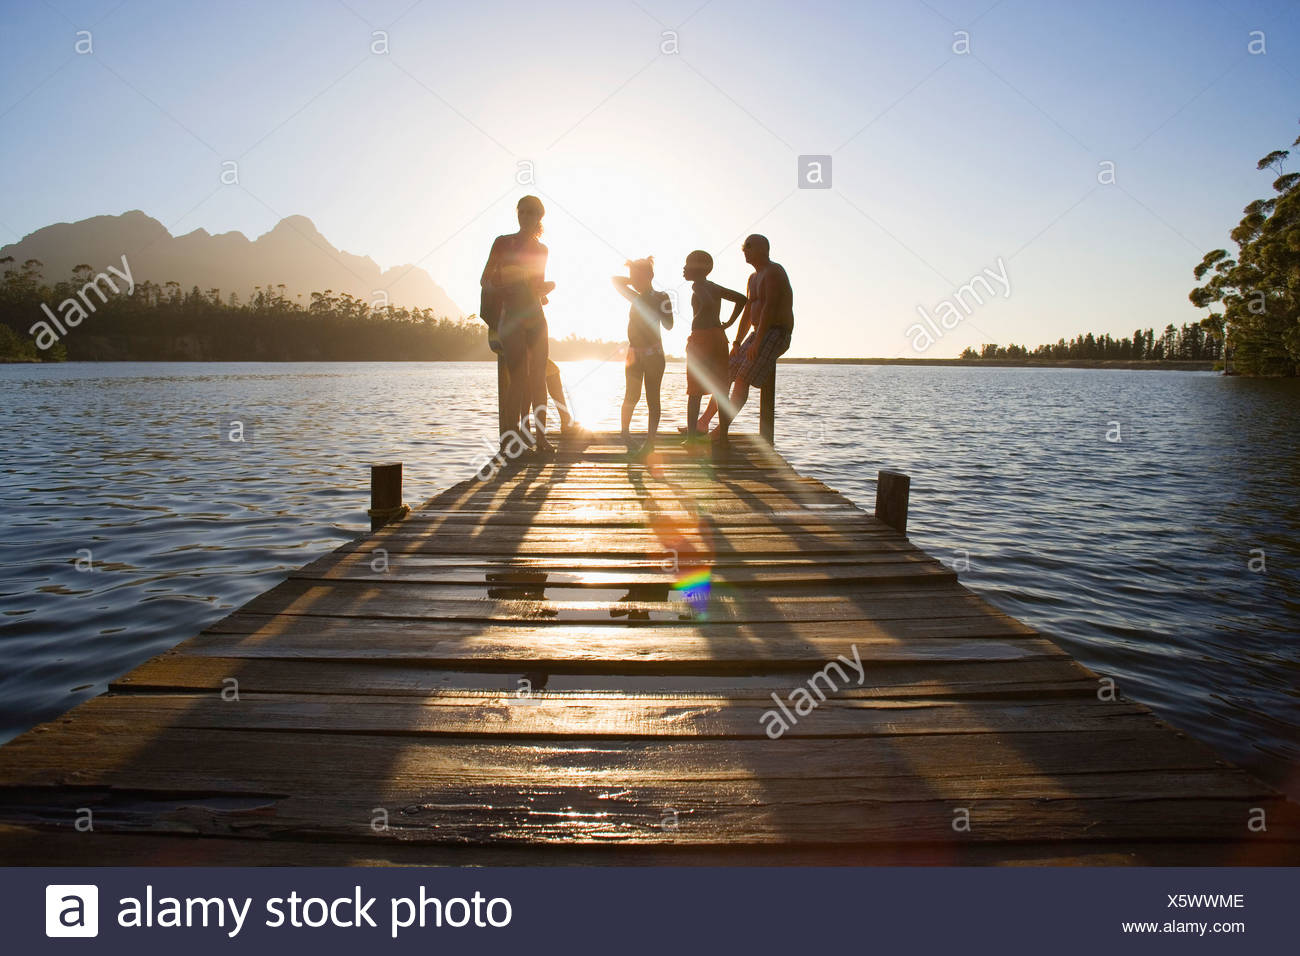 Family in swimwear standing at edge of lake jetty at sunset lens flare - Stock Image